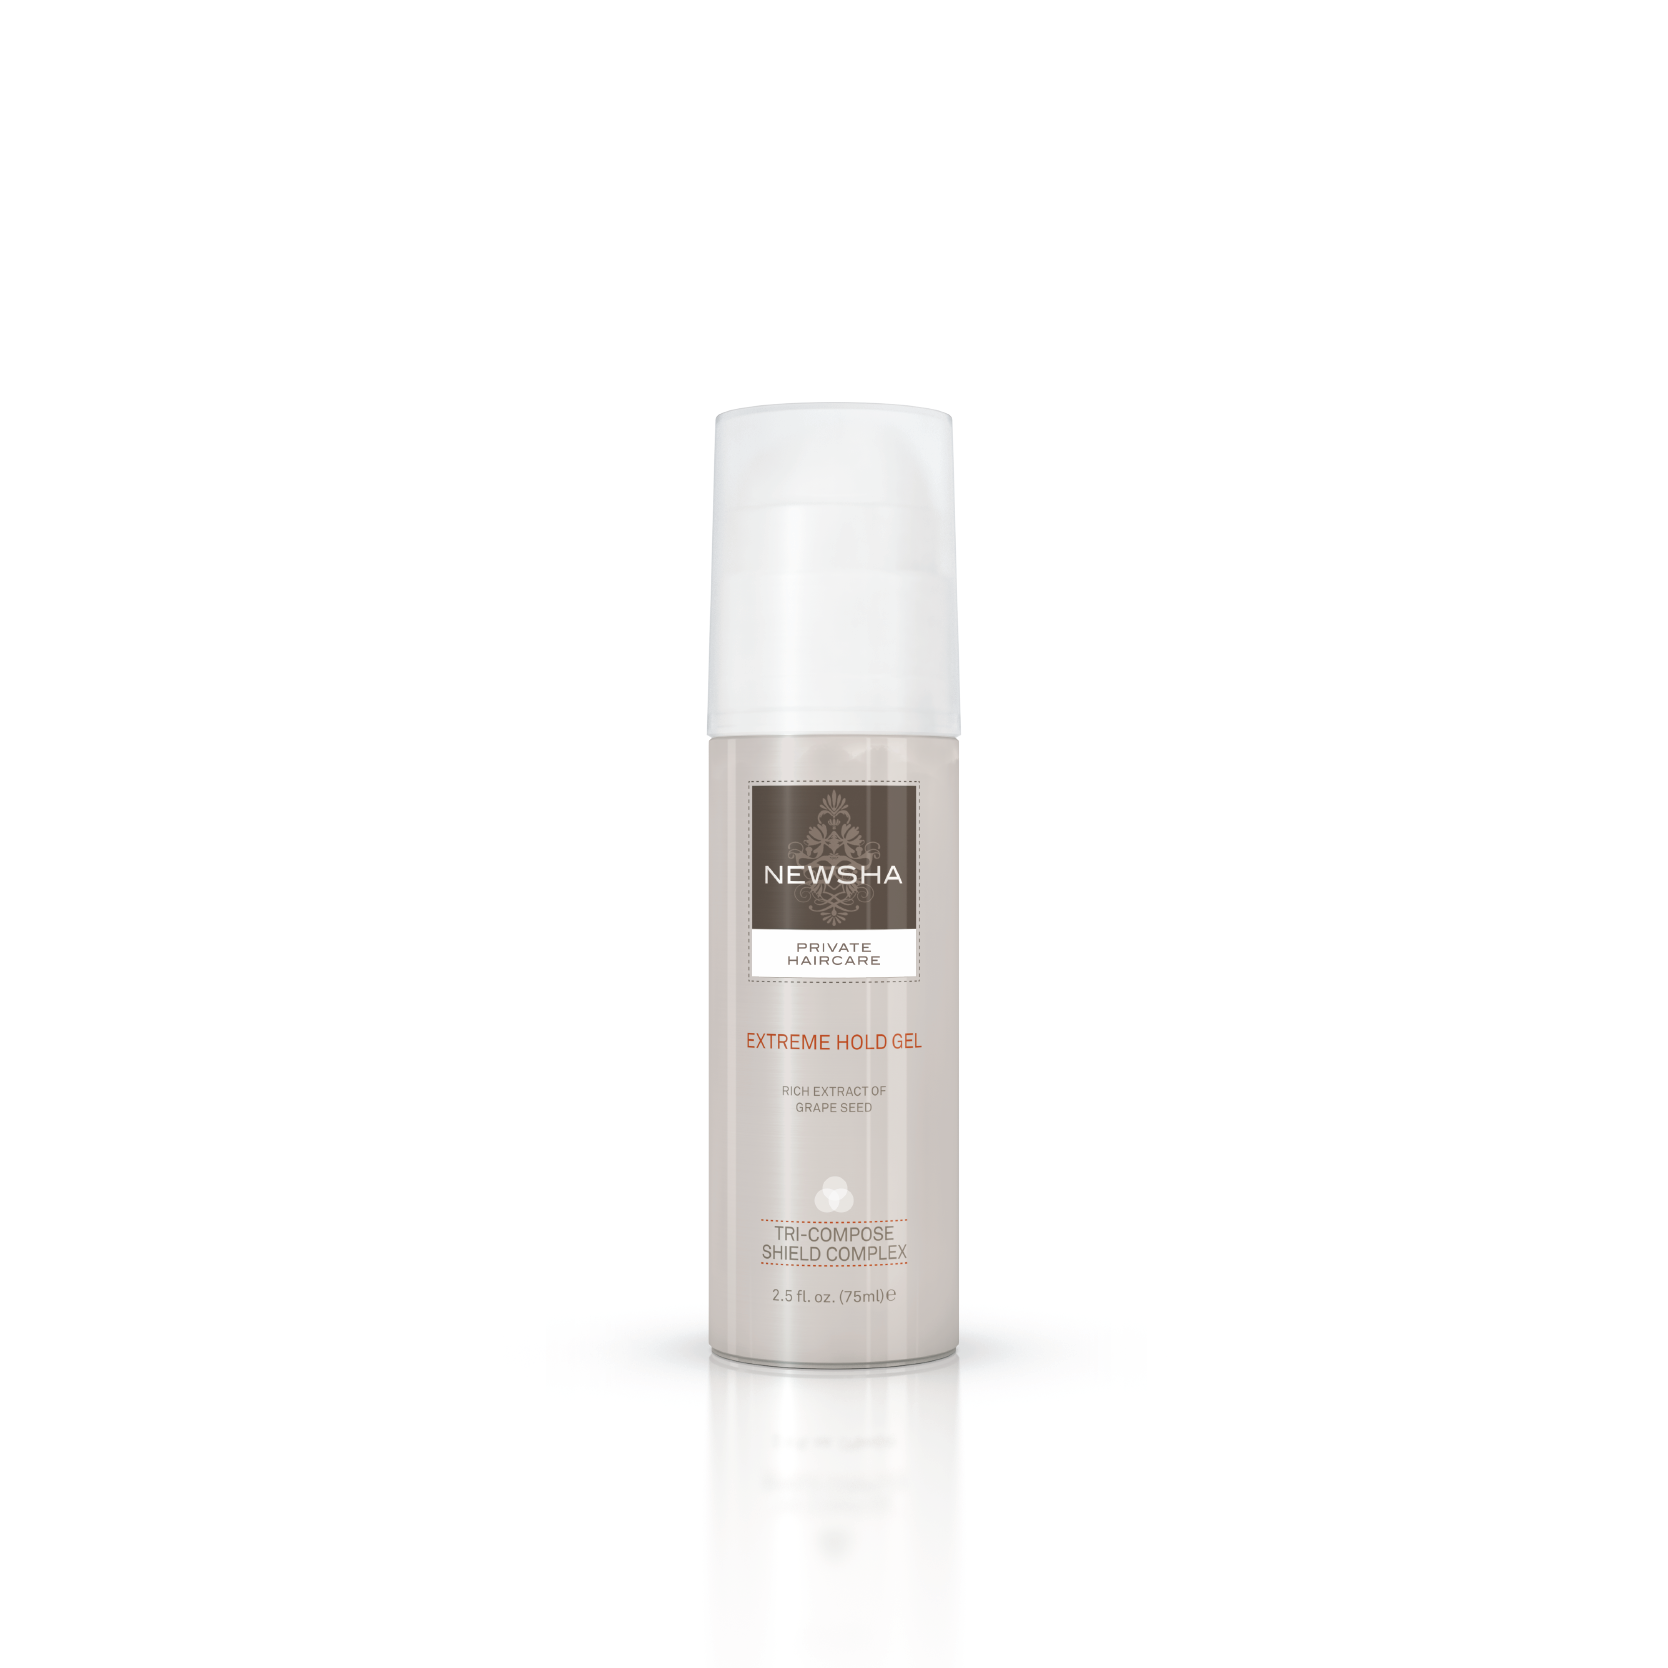 Newsha Product Shots_extreme hold gel-31.png